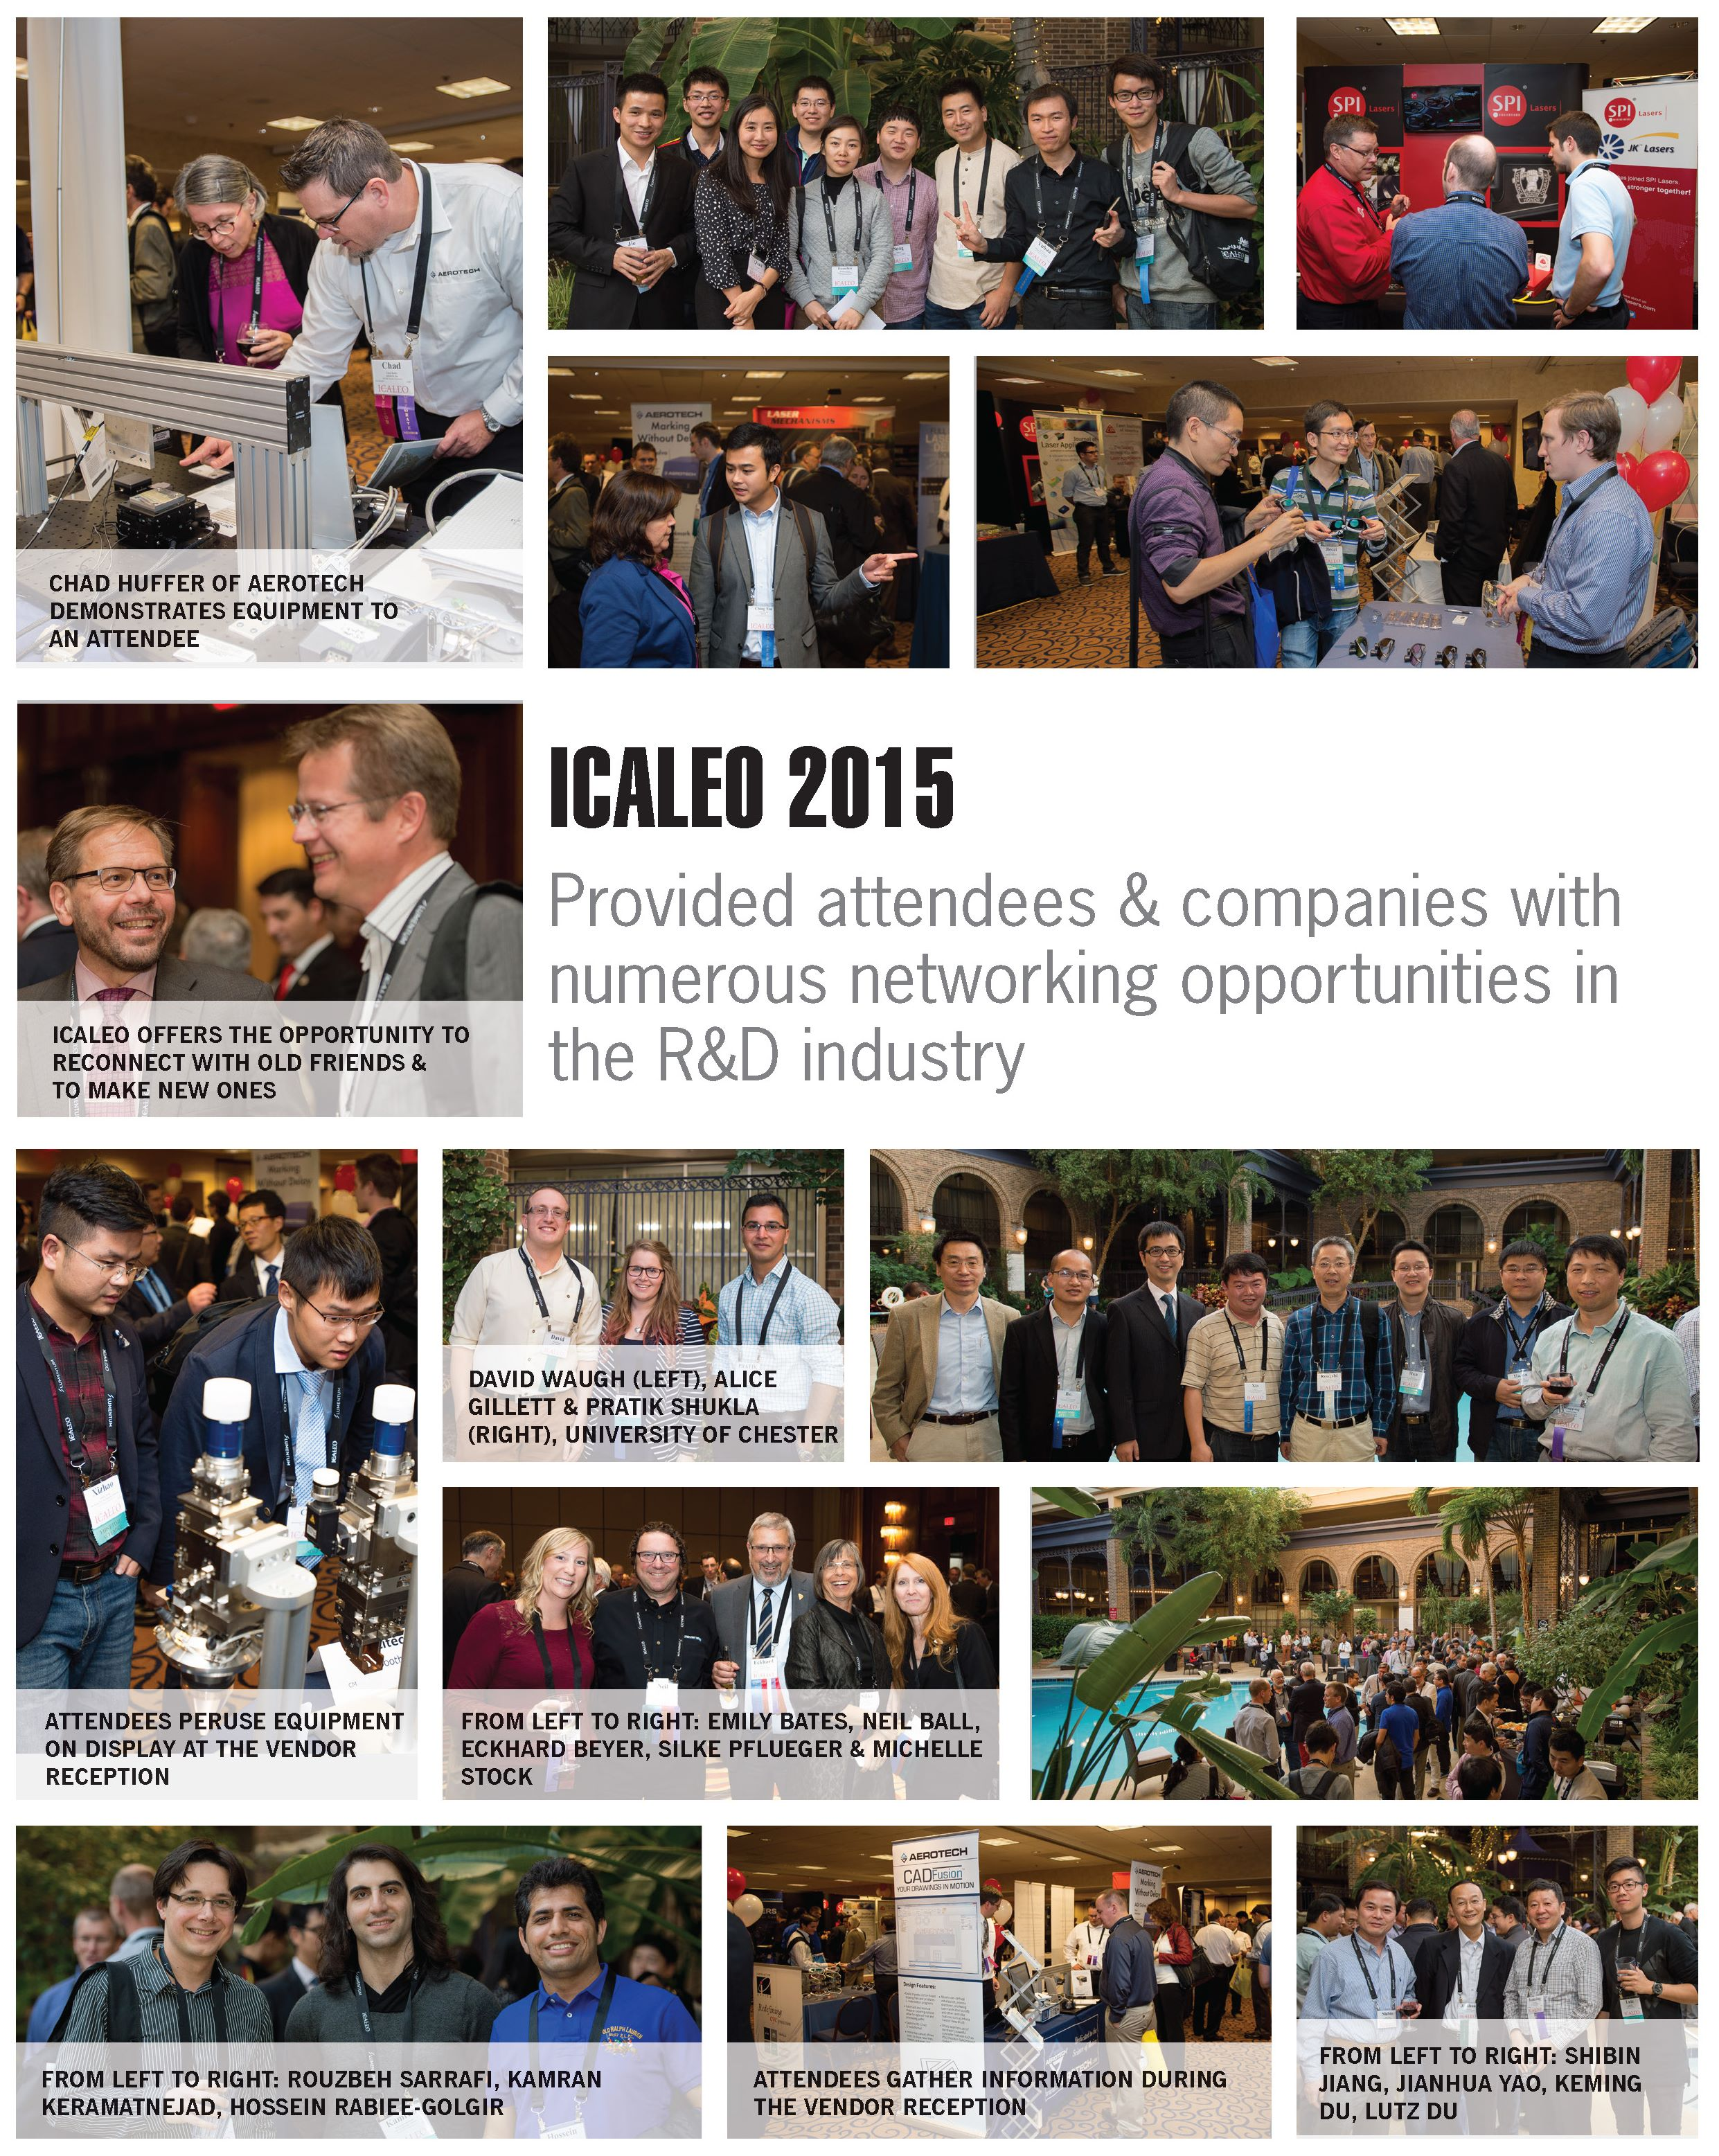 ICALEO_IMAGES__FINAL_Page_2